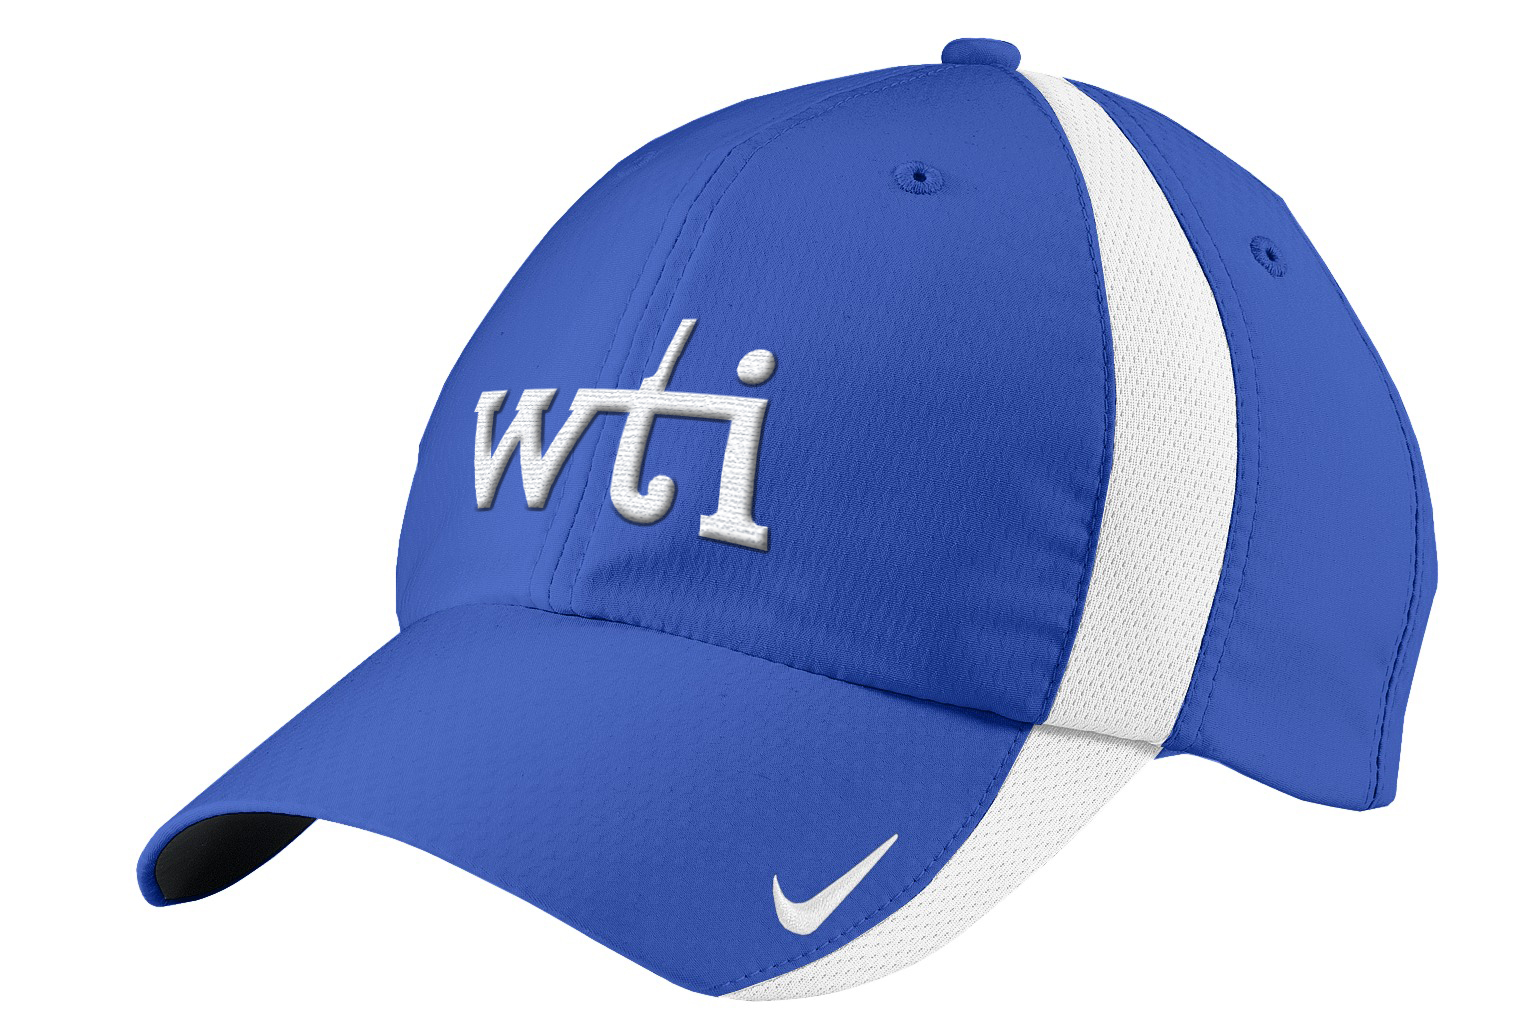 Nike Sphere Dry Cap.  247077. Prices Starting At $23!